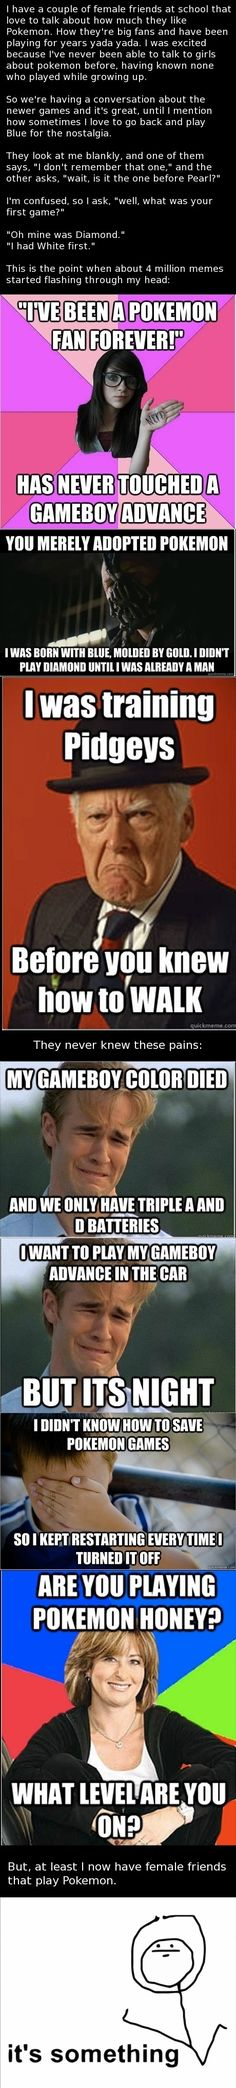 Are you a pokemon fan? // funny pictures - funny photos - funny images - funny pics - funny quotes - #lol #humor #funnypictures